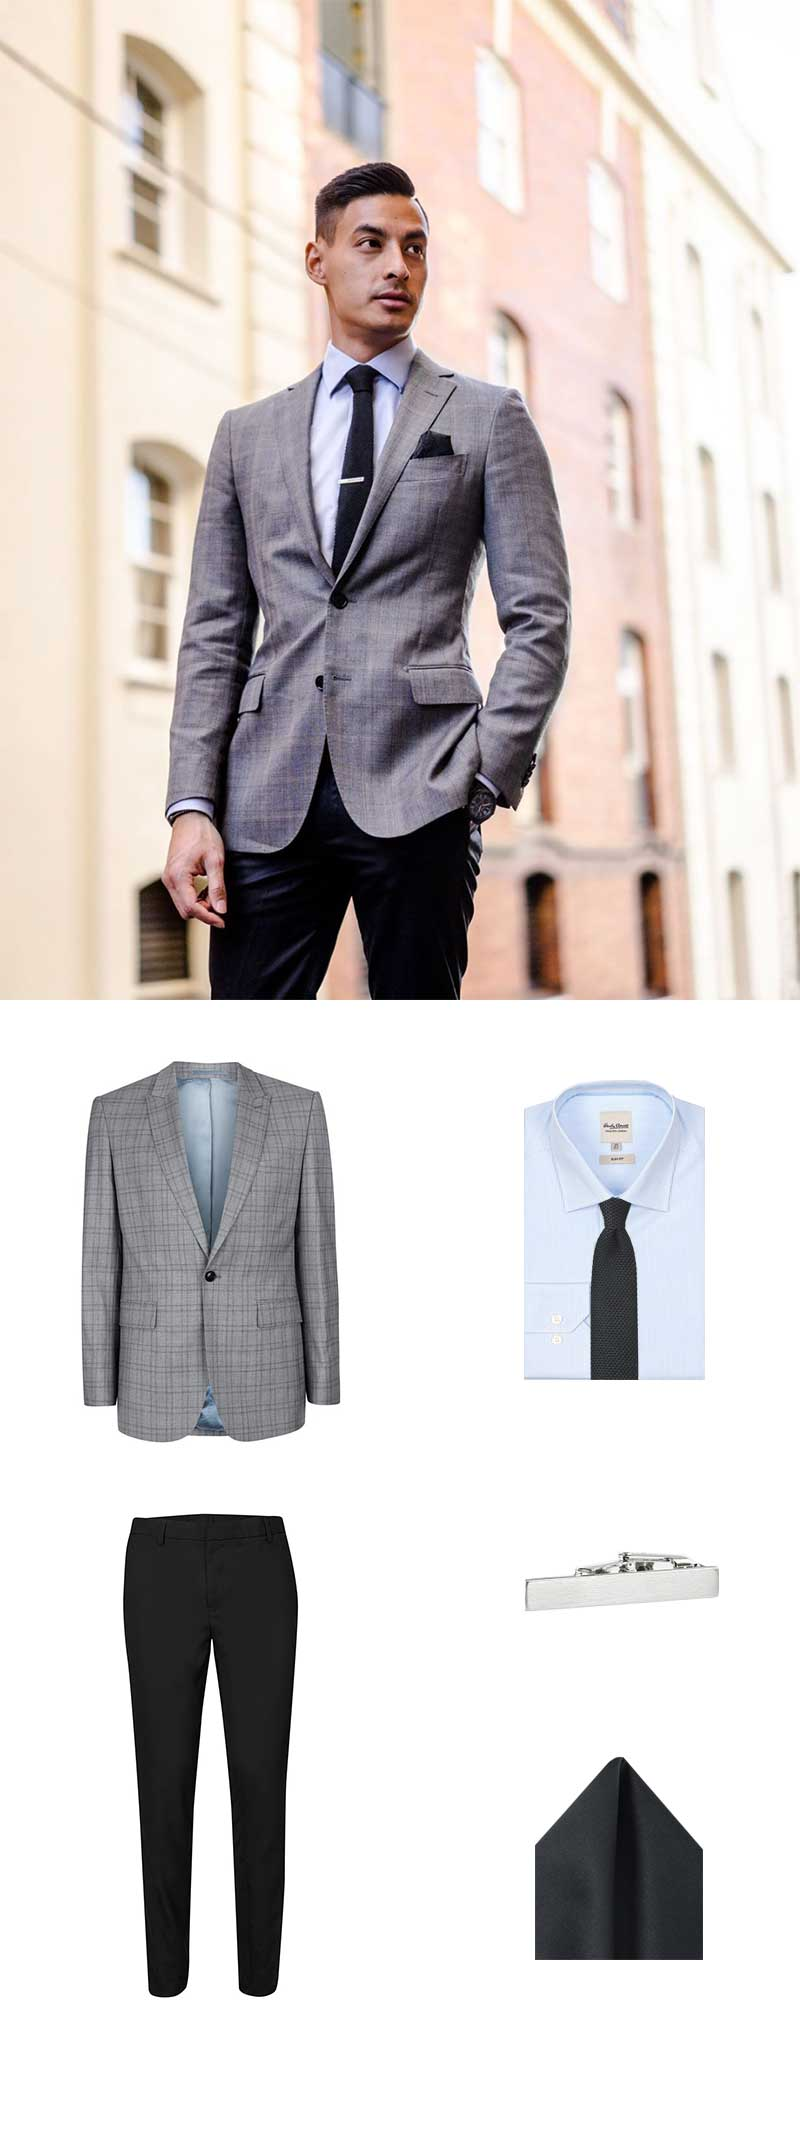 Best Men's Outfits For The Office